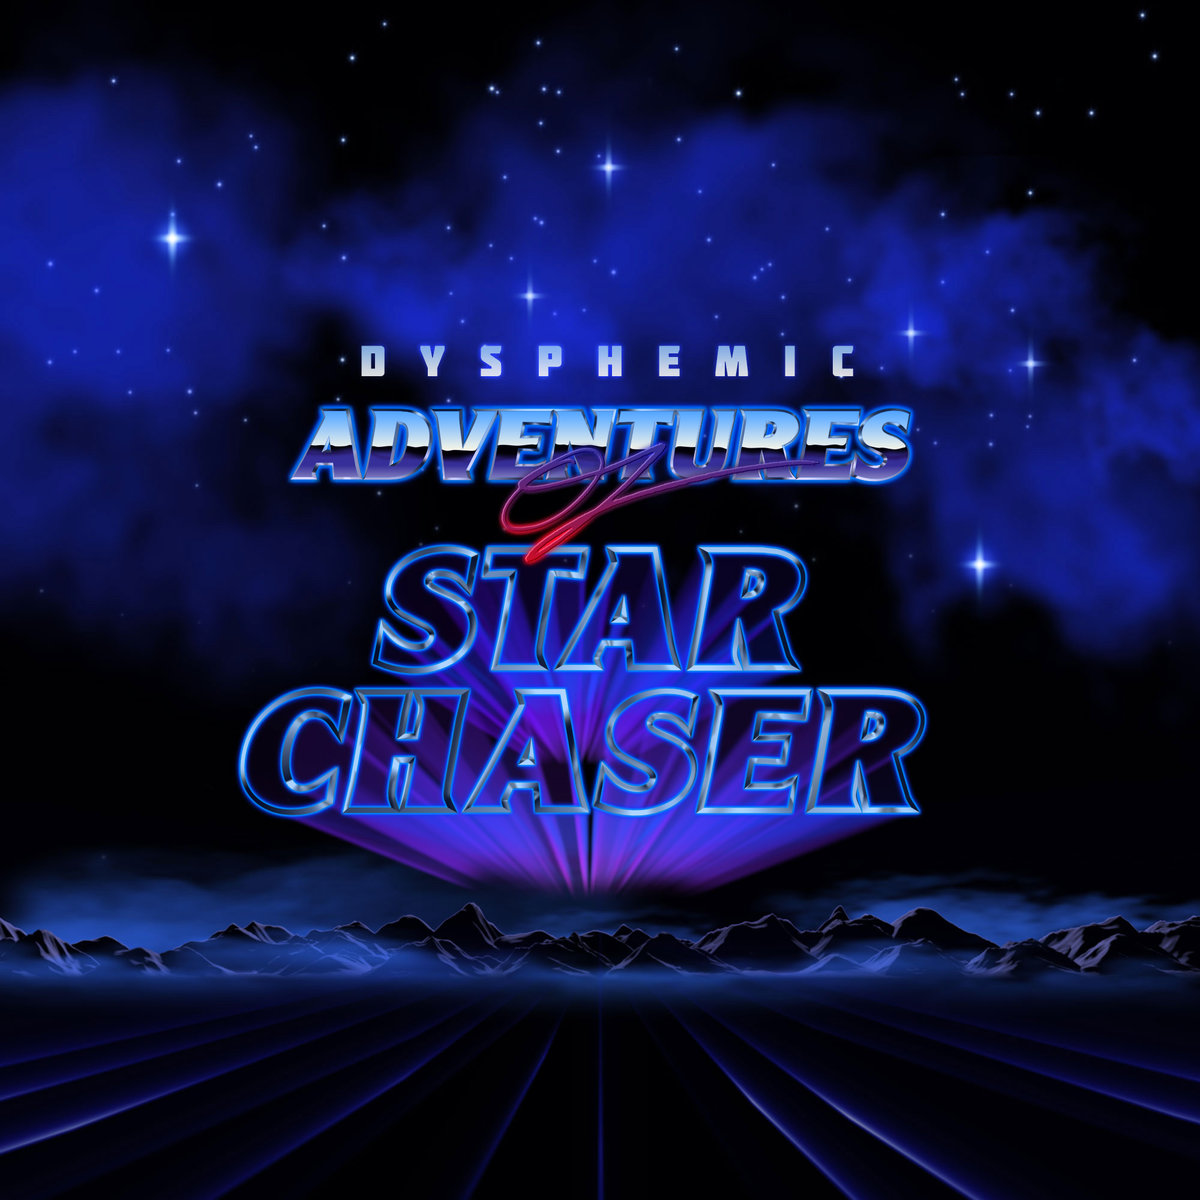 Dysphemic - Swamp Planet @ 'Adventures of Star Chaser' album (Austin)